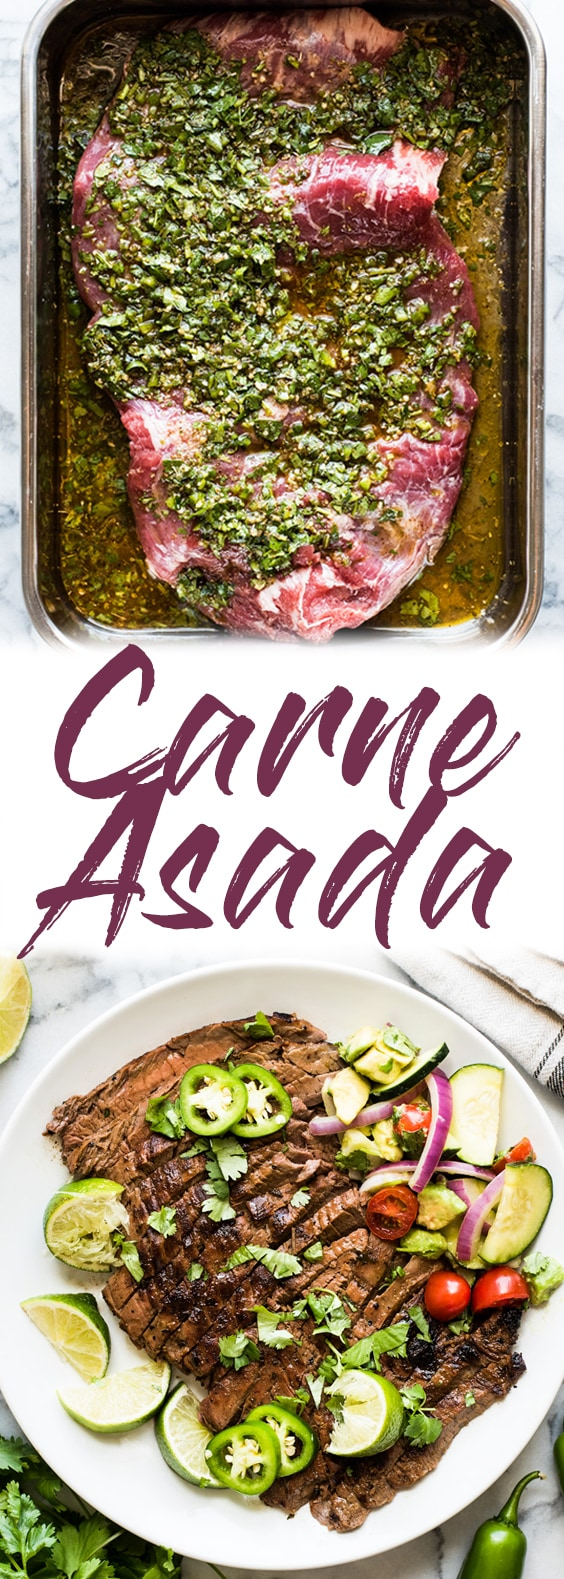 A delicious Carne Asada recipe made from marinated flank or skirt steak and cooked on the grill. Juicy, tender and a great addition to any Mexican meal! #mexican #grilled #steak